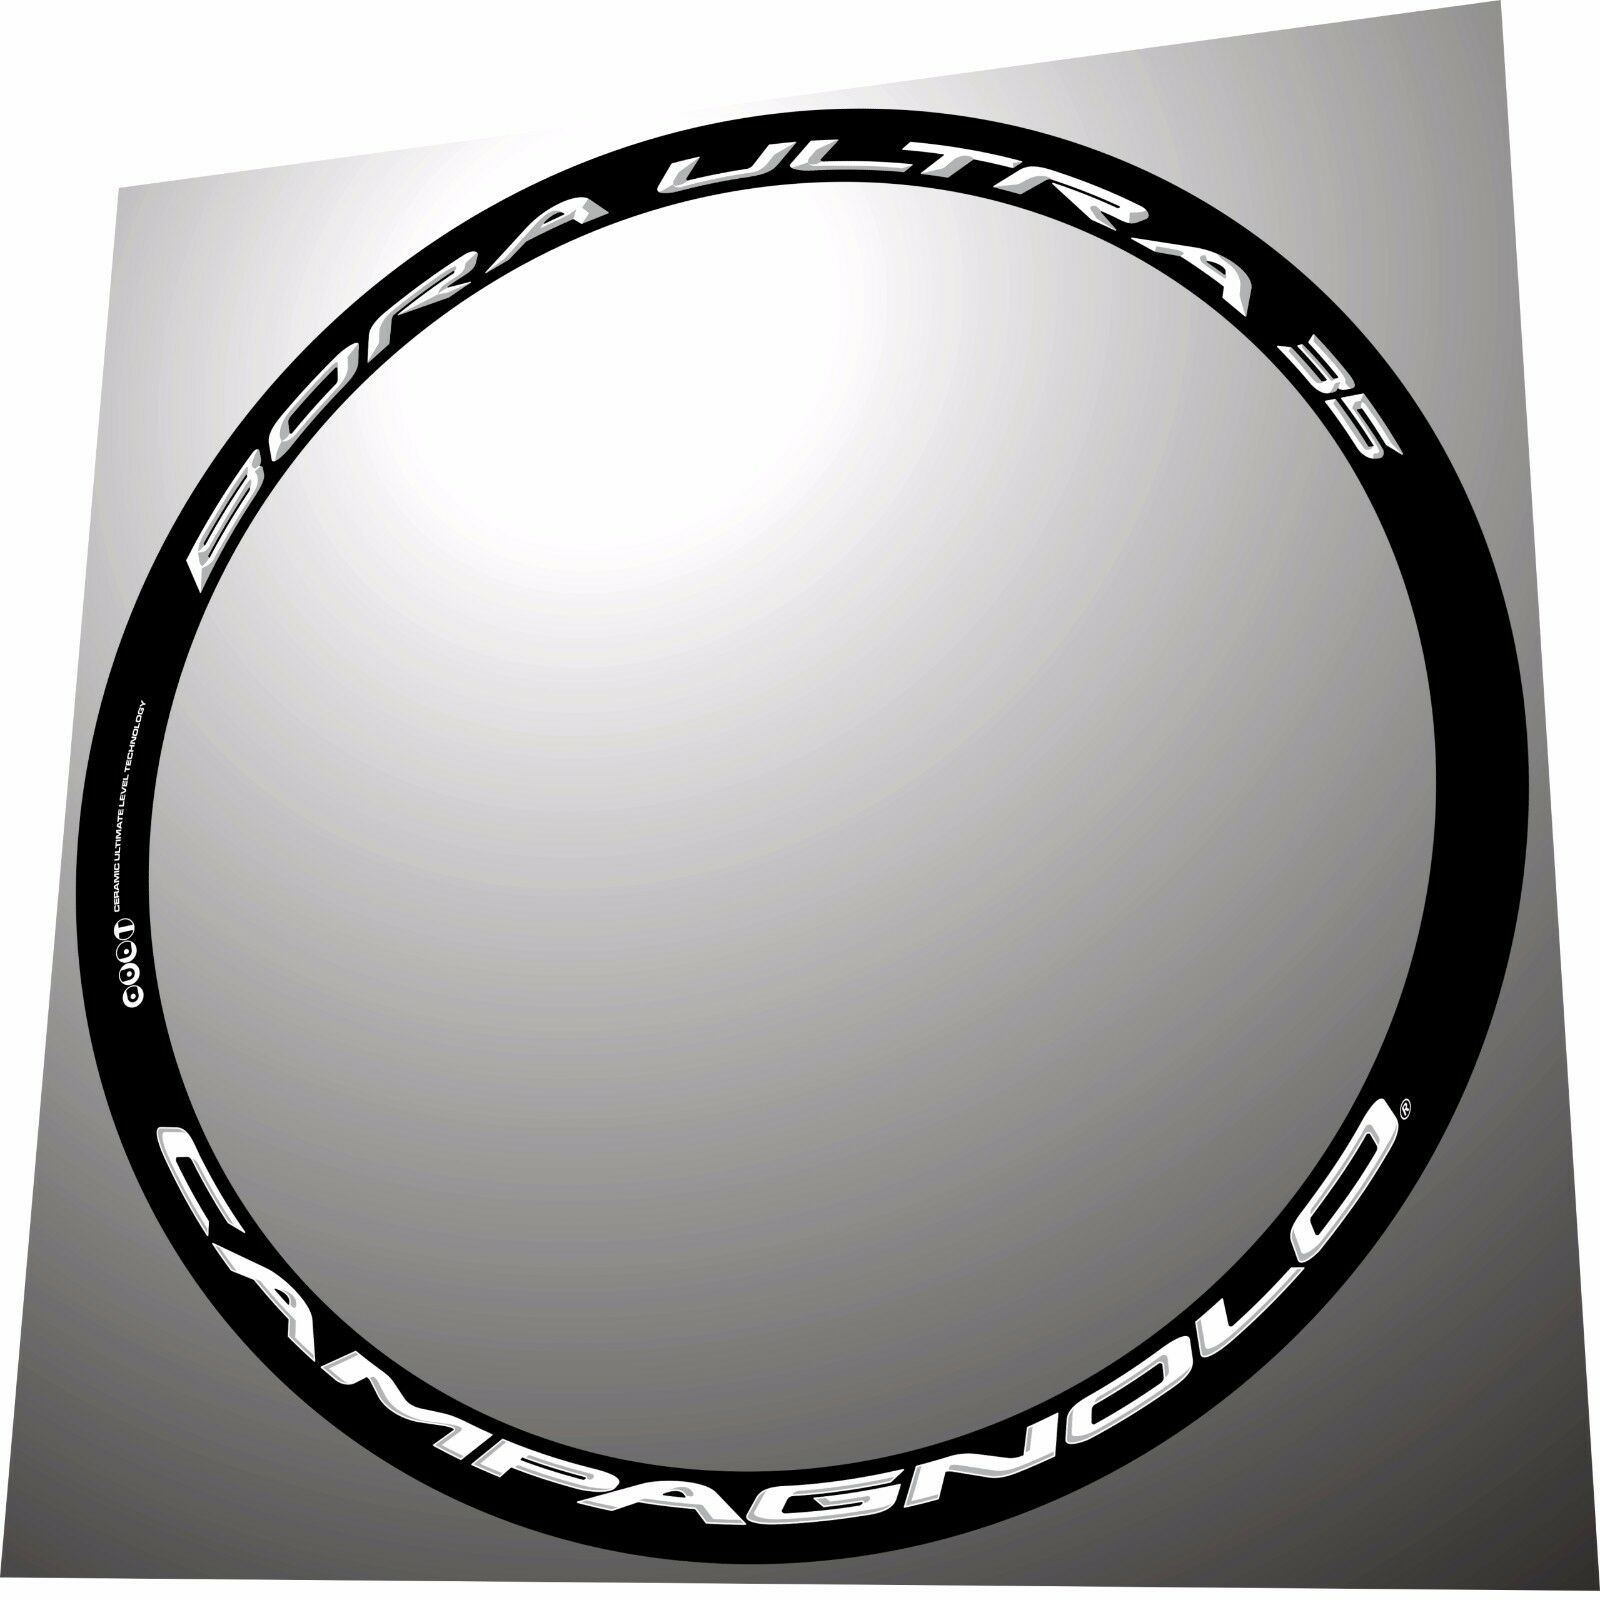 CAMPAGNOLO BORA ULTRA 35 3D ALL WHITE 3D REPLACEMENT RIM DECAL SET FOR 2 RIMS